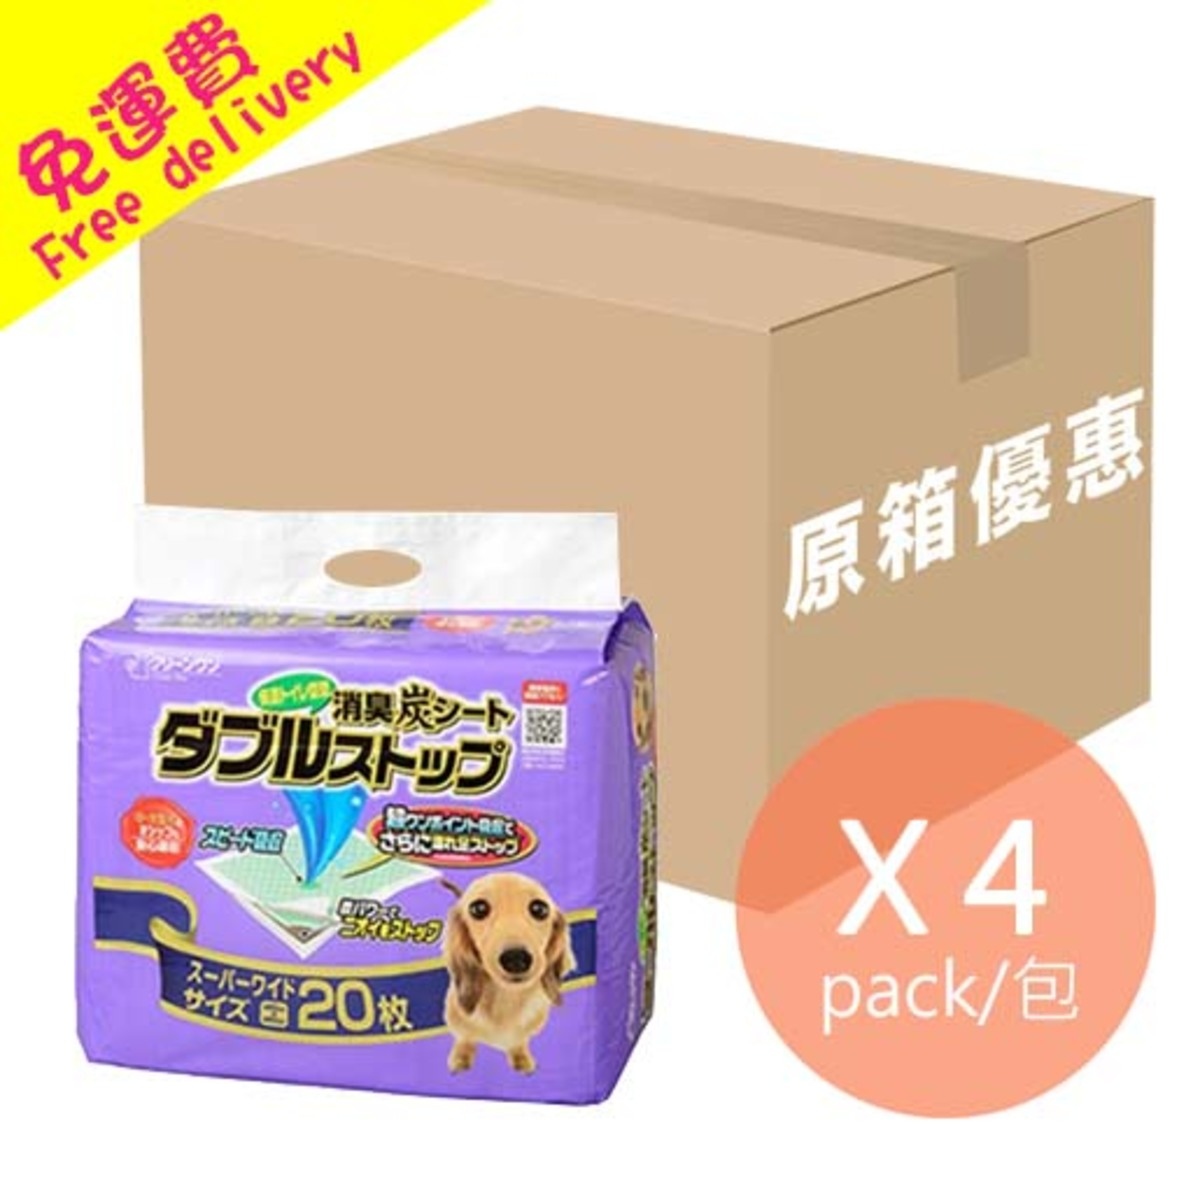 Deodorizing Charcoal Pet Diapers of 20 pcs , 60cm x 90cm  X 4Bags (Over $300, Free Delivery)